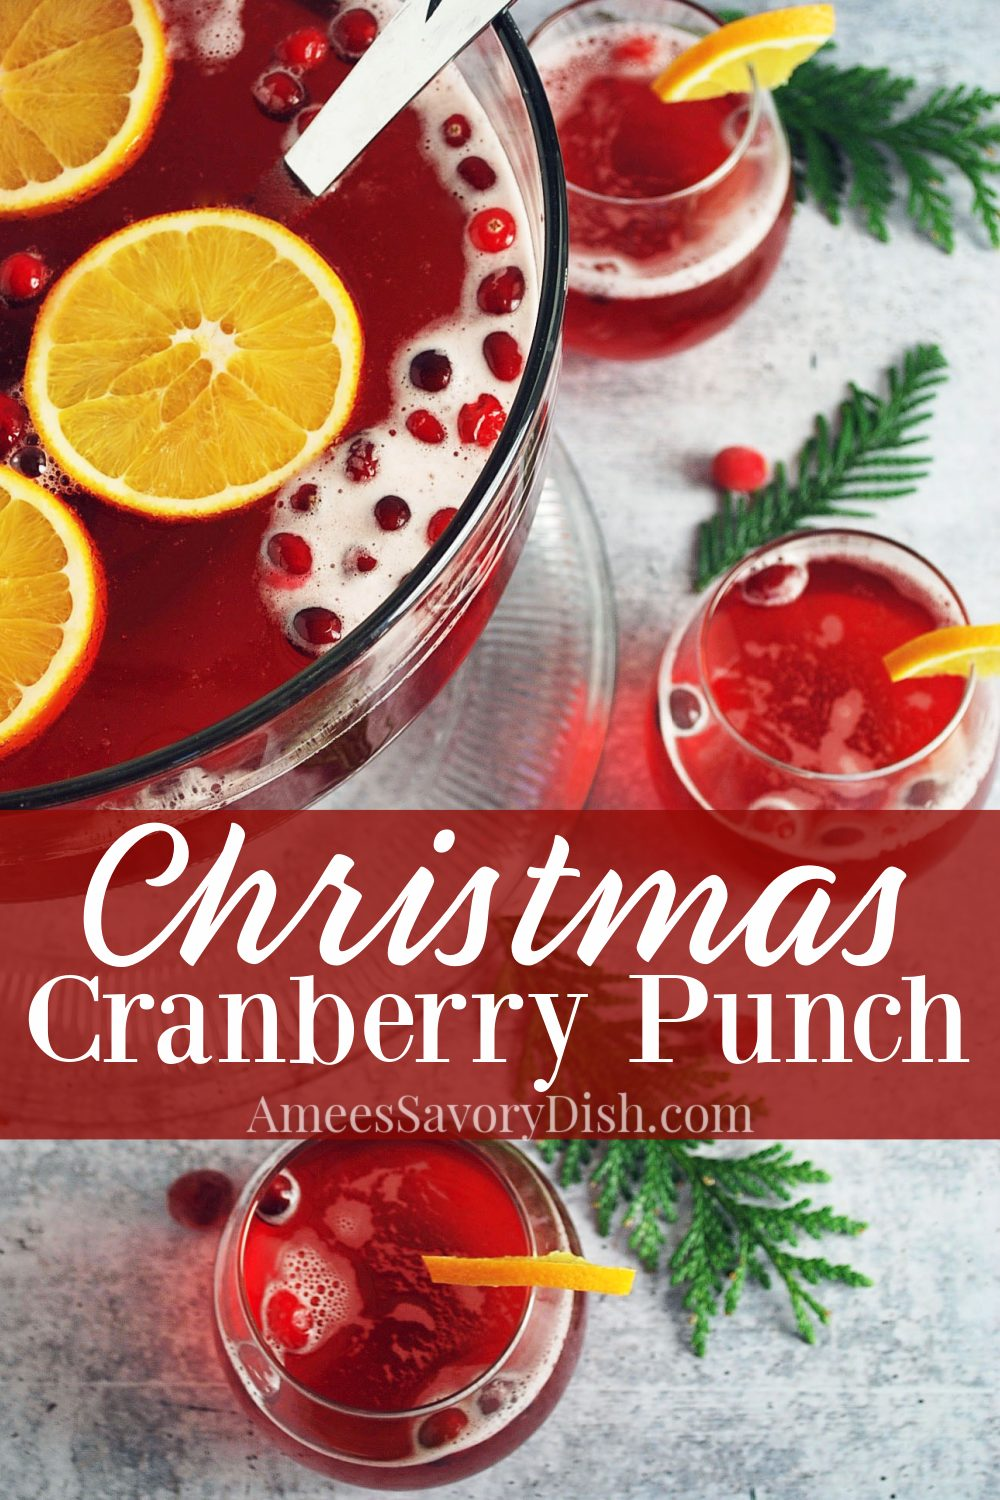 This is the absolute best Christmas punch recipe made with light cranberry juice, ginger ale, unsweetened pineapple juice, and almond extract. I always get requests for this lightened-up punch recipe at holiday parties. #christmaspunch #cranberrypunch #holidaypunch #punchrecipe via @Ameessavorydish